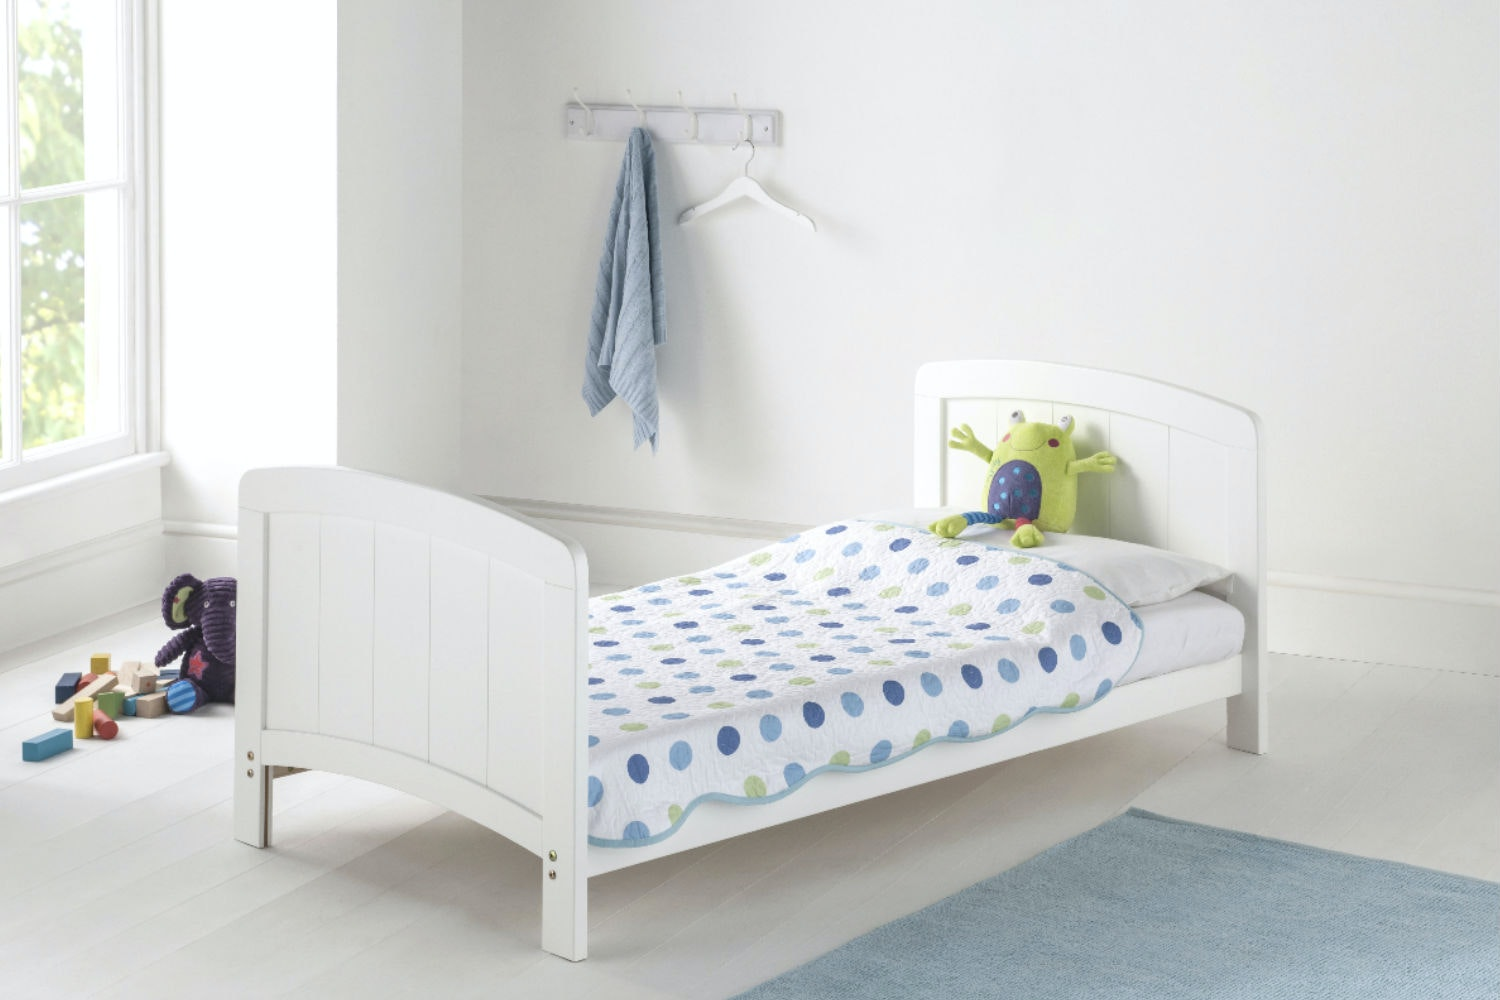 Venice Cot Bed | WhiteVenice Cot Bed | White